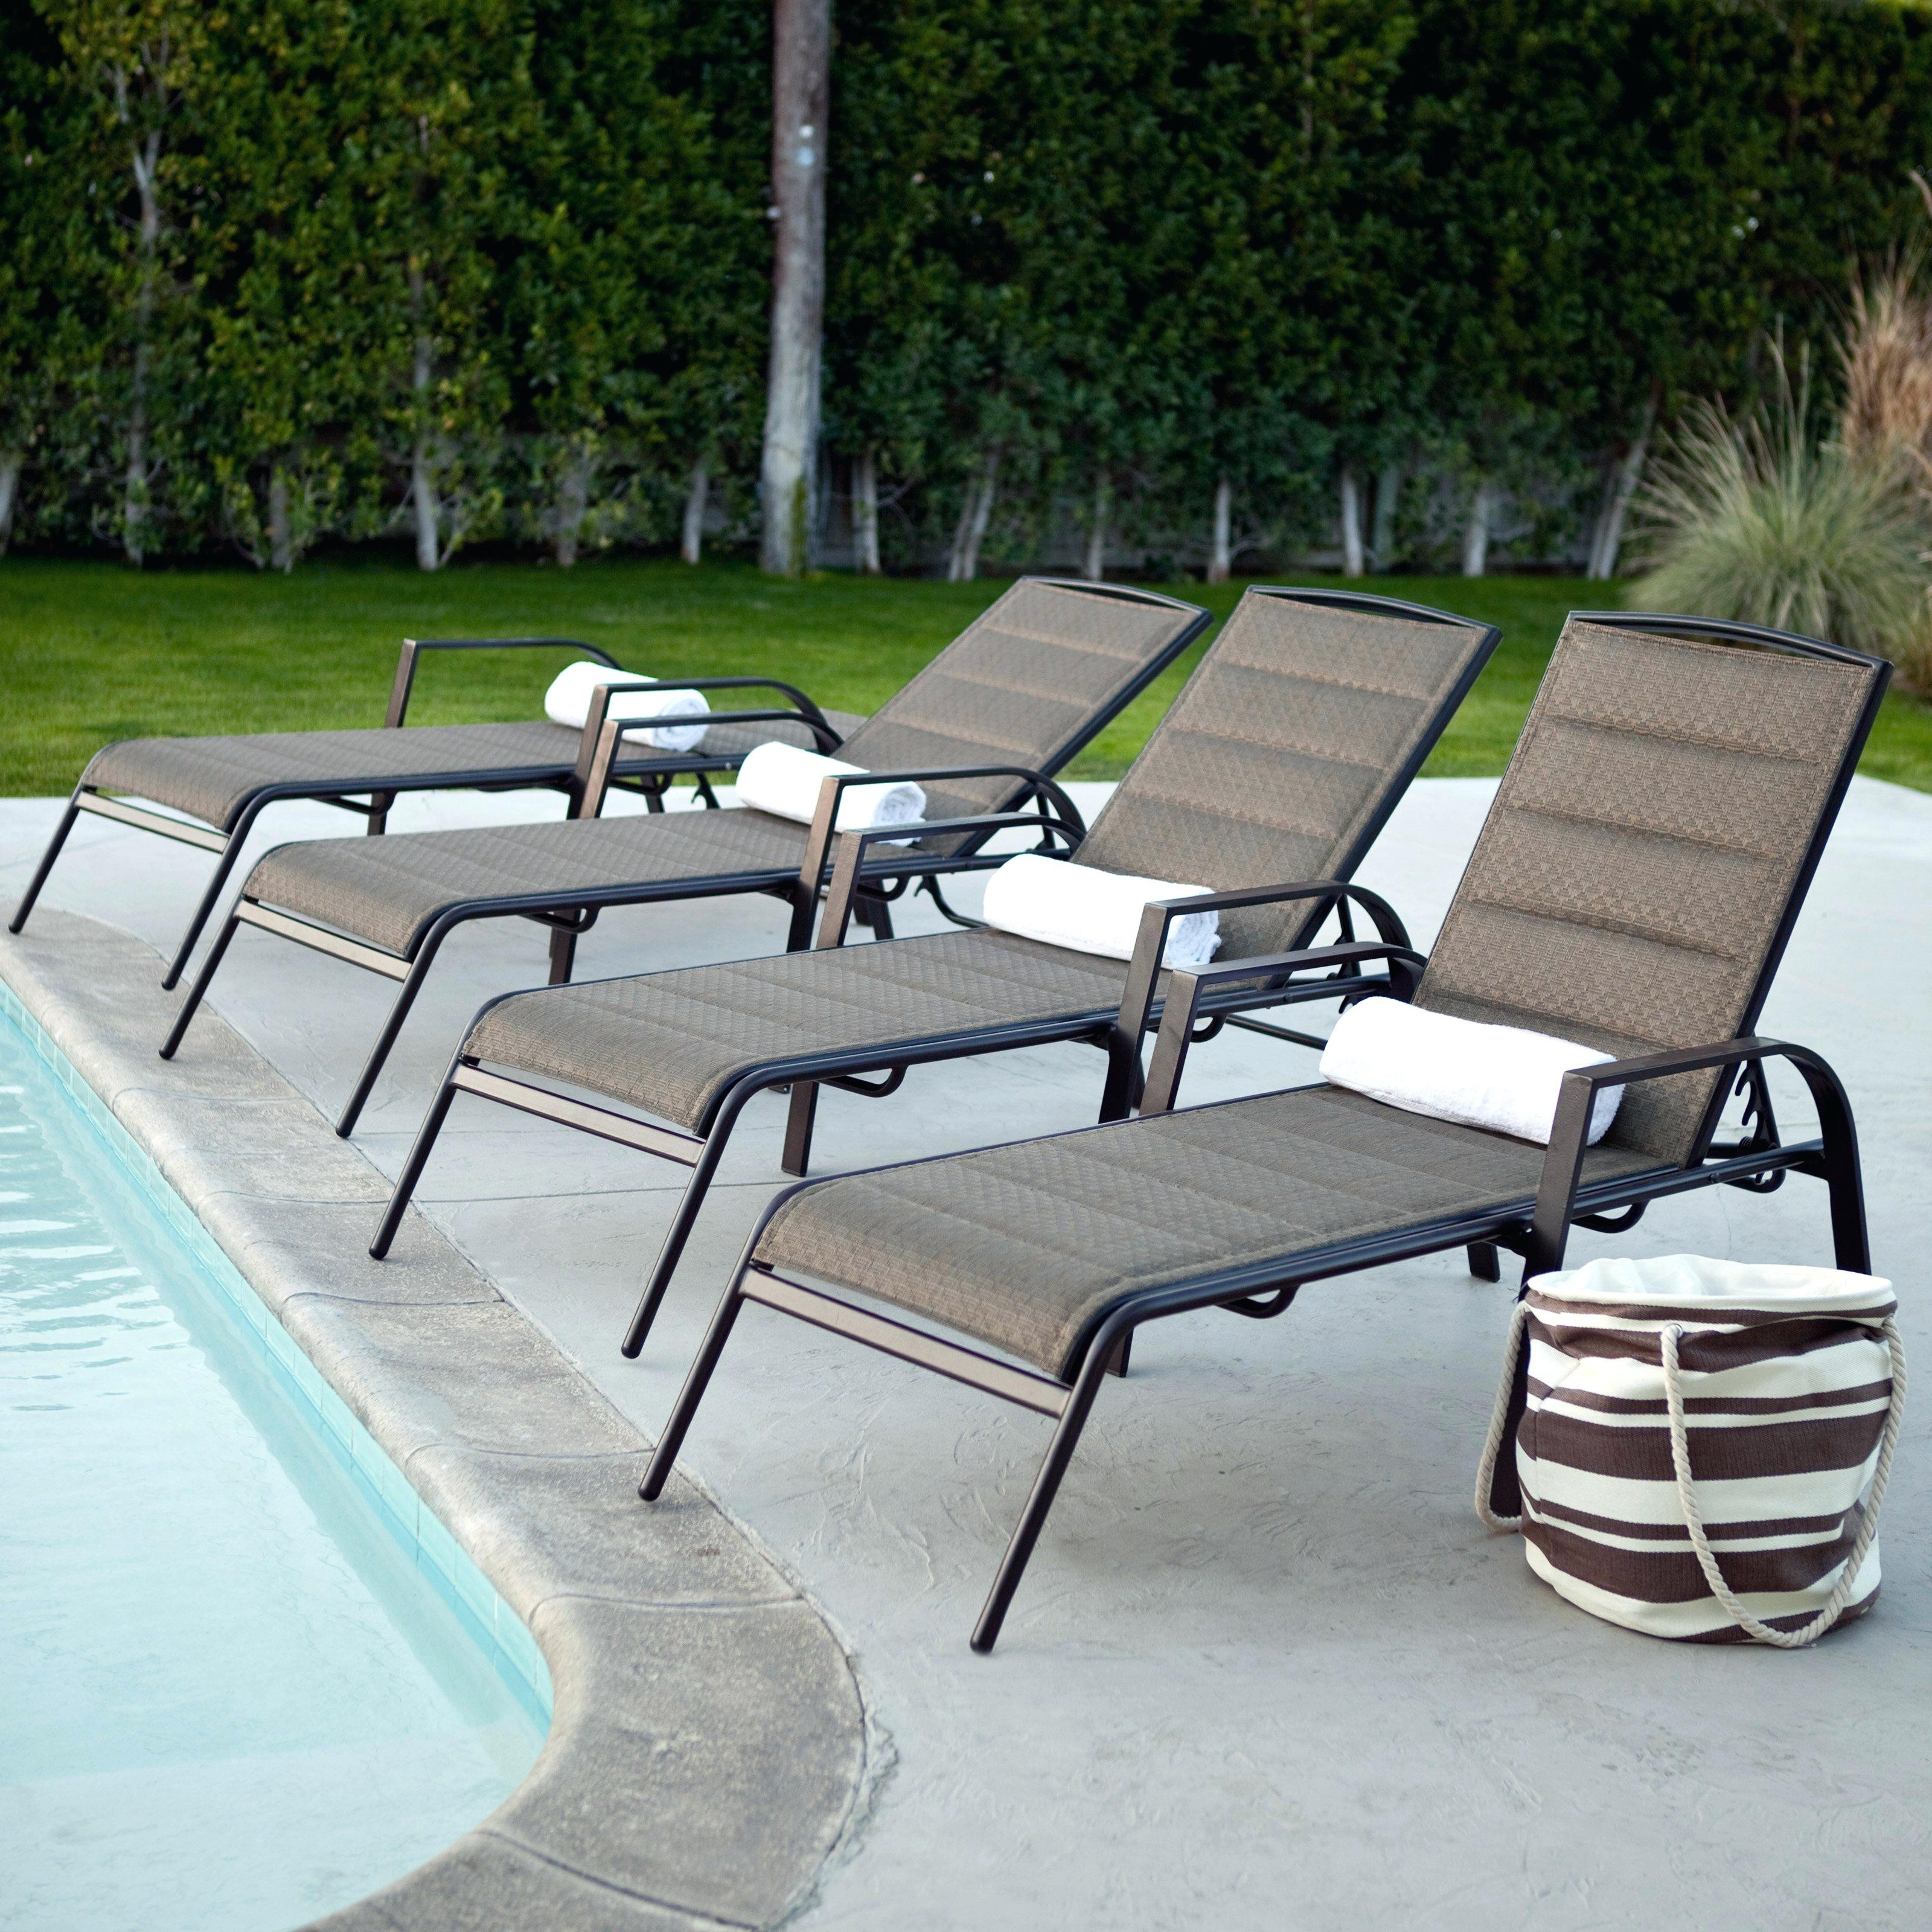 Latest Keter Pool Lounge Chairs • Lounge Chairs Ideas Intended For Keter Chaise Lounge Chairs (View 14 of 15)